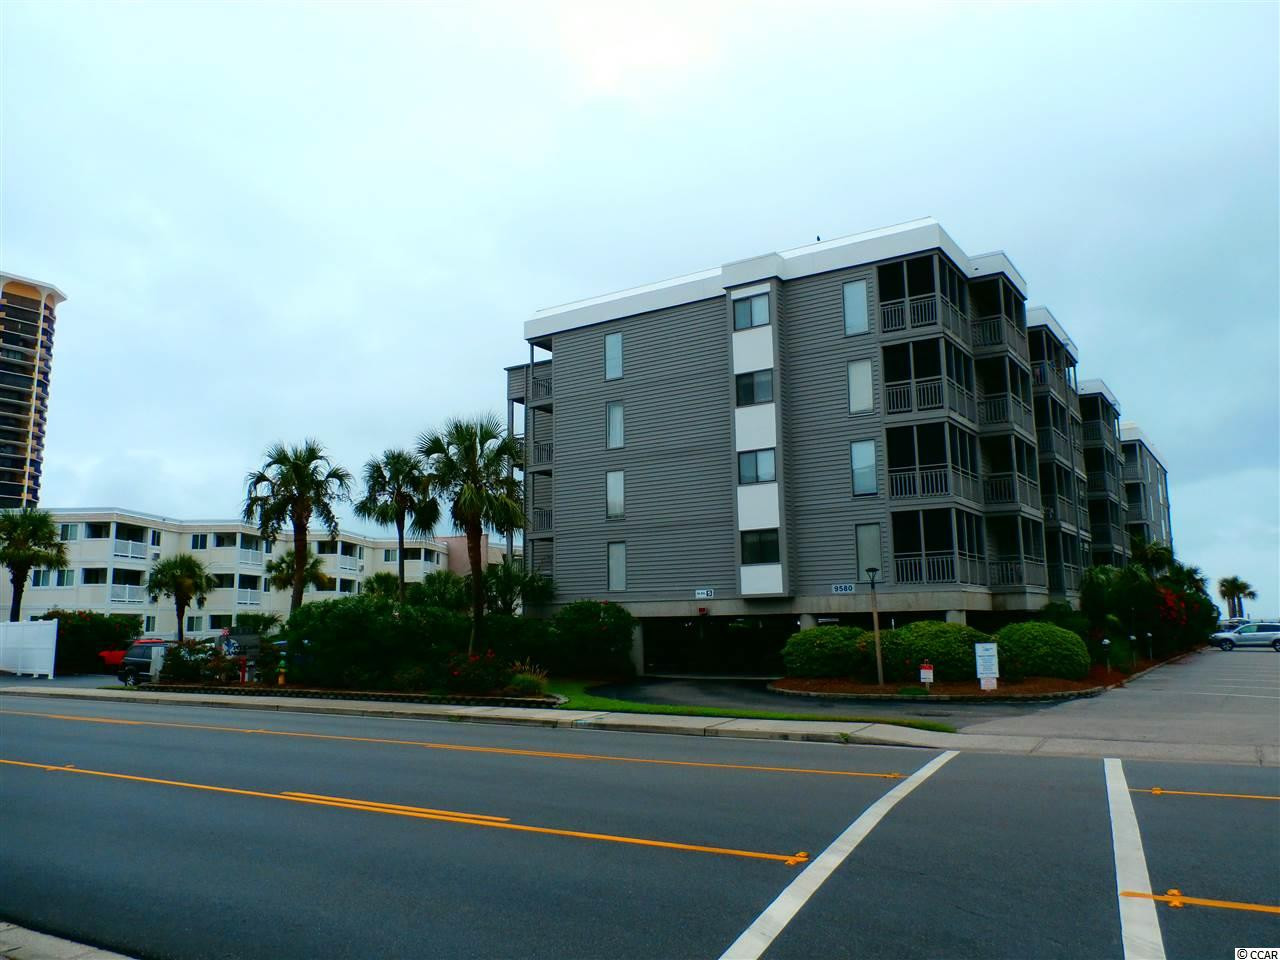 PELICANS LDG  condo now for sale